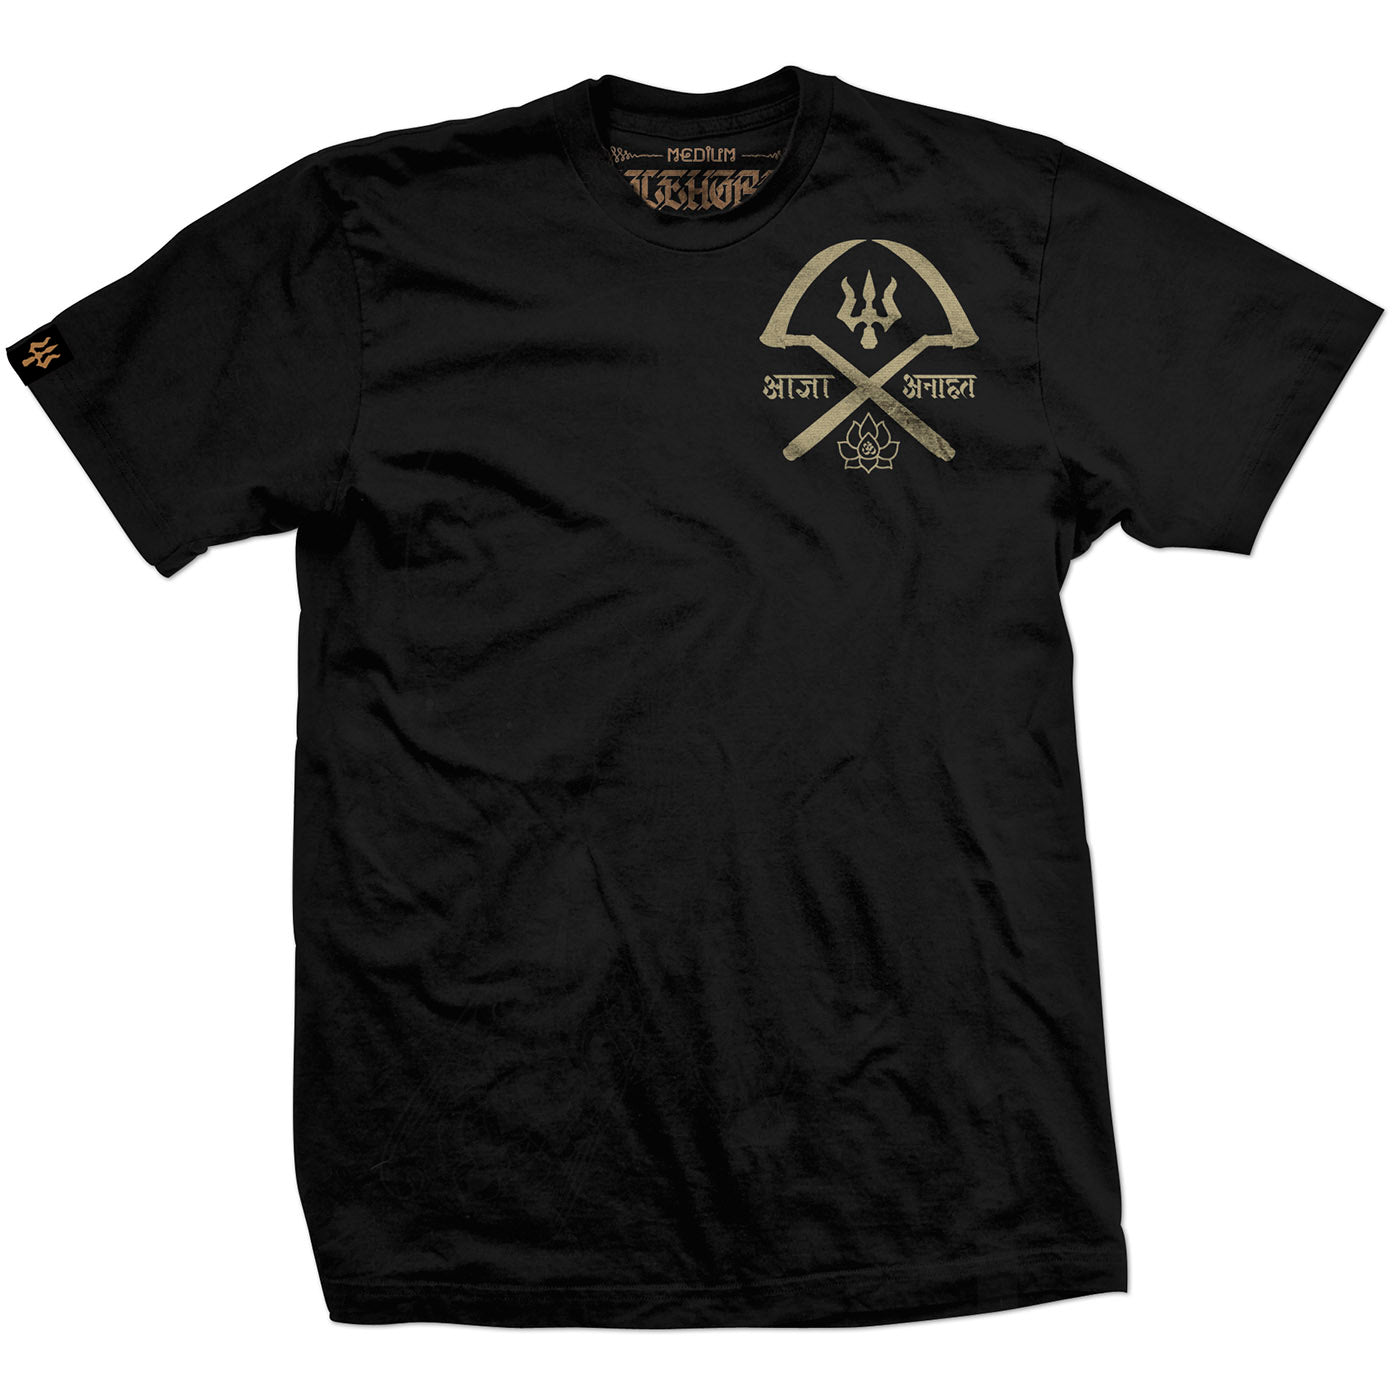 T-shirt: 'Battle Axe'